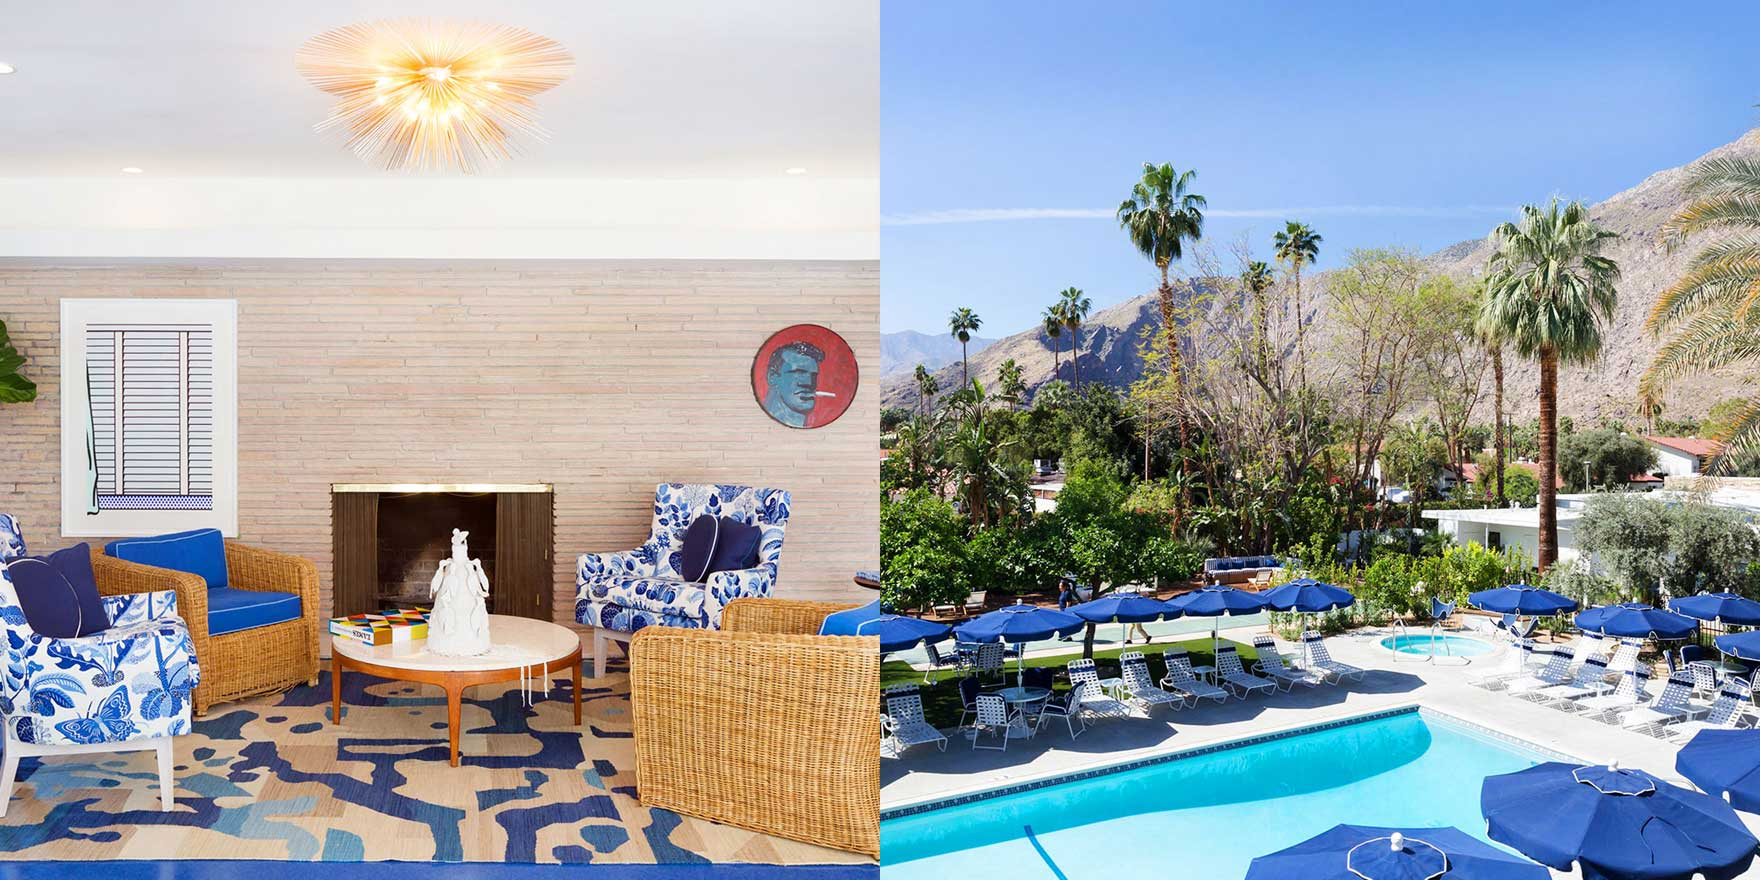 Holiday House Hotel Palm Springs – Boutique Hotel in Palm Springs